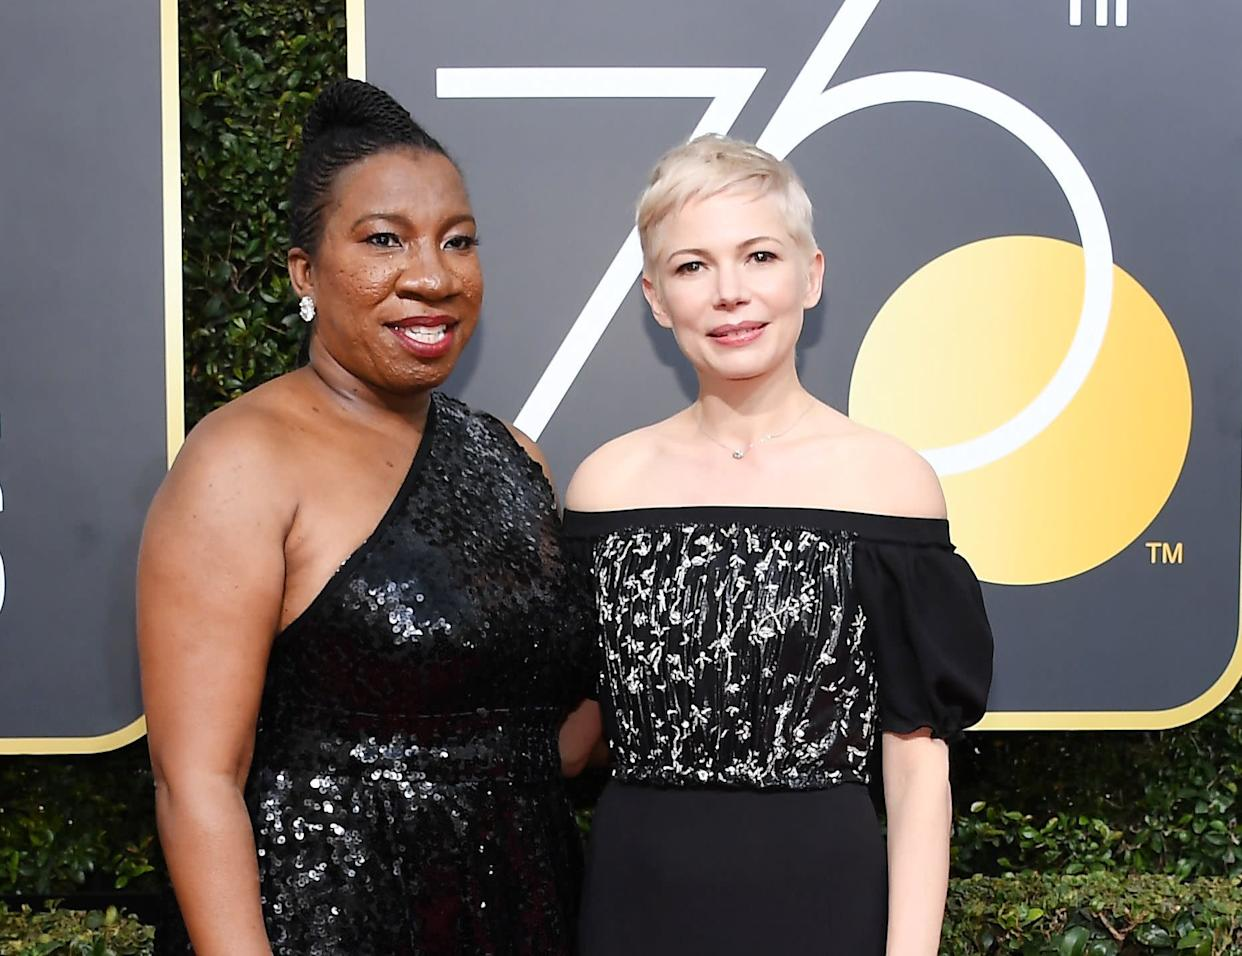 Tarana Burke, who attended the show with Michelle Williams,&amp;nbsp;<span>founded the &amp;ldquo;Me Too&amp;rdquo; movement</span> long before its hashtag existed. She founded the youth organization Just Be Inc. in 2006 with a mission to educate young women of color on health and well-being. A year later,&amp;nbsp;she&amp;nbsp;created the &amp;ldquo;Me Too&amp;rdquo; campaign as a grassroots movement to reach sexual assault survivors in underprivileged communities.<br><br>Currently, Burke is a <span>senior director</span> at Girls for Gender Equity in New York and has continued her work as a youth advocate in the more recent #MeToo movement. This past fall, <span>Burke spoke at the Women&amp;rsquo;s Convention</span> in Detroit. She was also one of the&amp;nbsp;<span>&amp;ldquo;Silence Breakers&amp;rdquo;</span>&amp;nbsp;that Time magazine named as person of the year for 2017.<br><br>&amp;ldquo;Me too is so powerful because somebody had said it to me and it changed the trajectory of my healing process once I heard that,&amp;rdquo; Burke said in <span>an October interview</span> with Democracy Now. &amp;ldquo;Me too was about reaching the places that other people wouldn&amp;rsquo;t go, bringing messages and words and encouragement to survivors of sexual violence where other people wouldn&amp;rsquo;t be talking about it.&amp;rdquo;